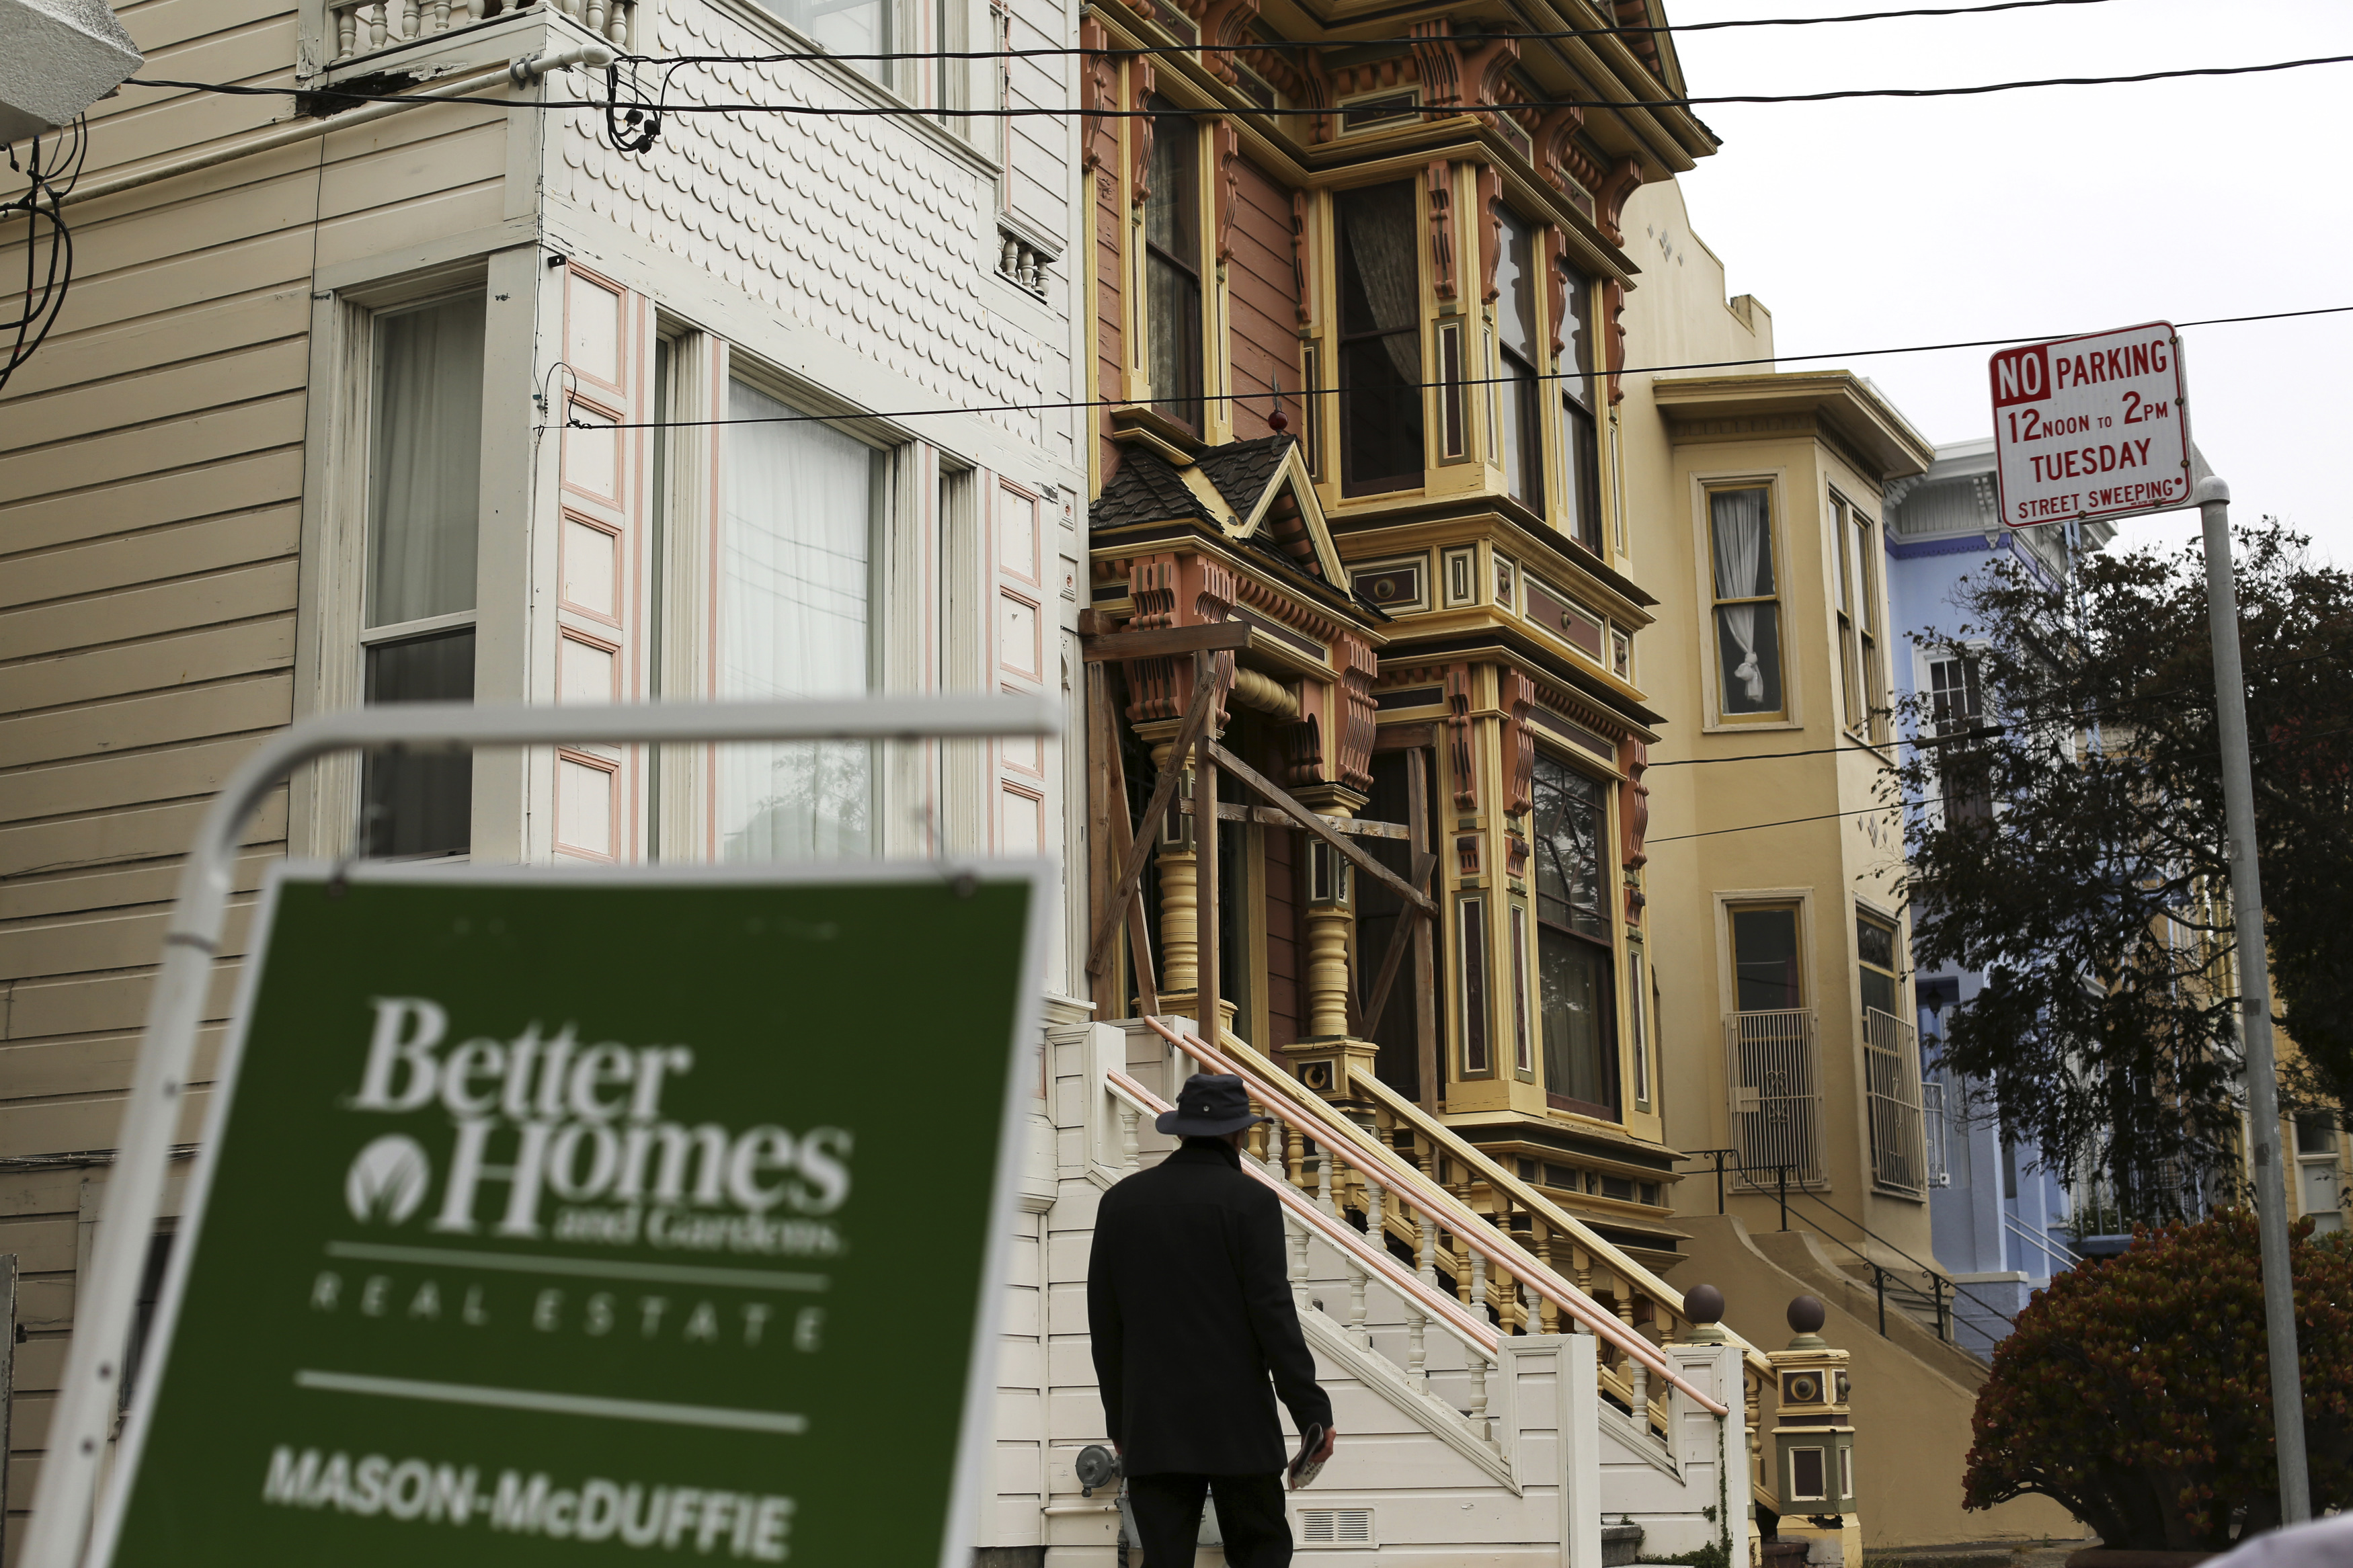 A real state sign is seen near a row of homes in the Haight Ashbury neighborhood in San Francisco, California.